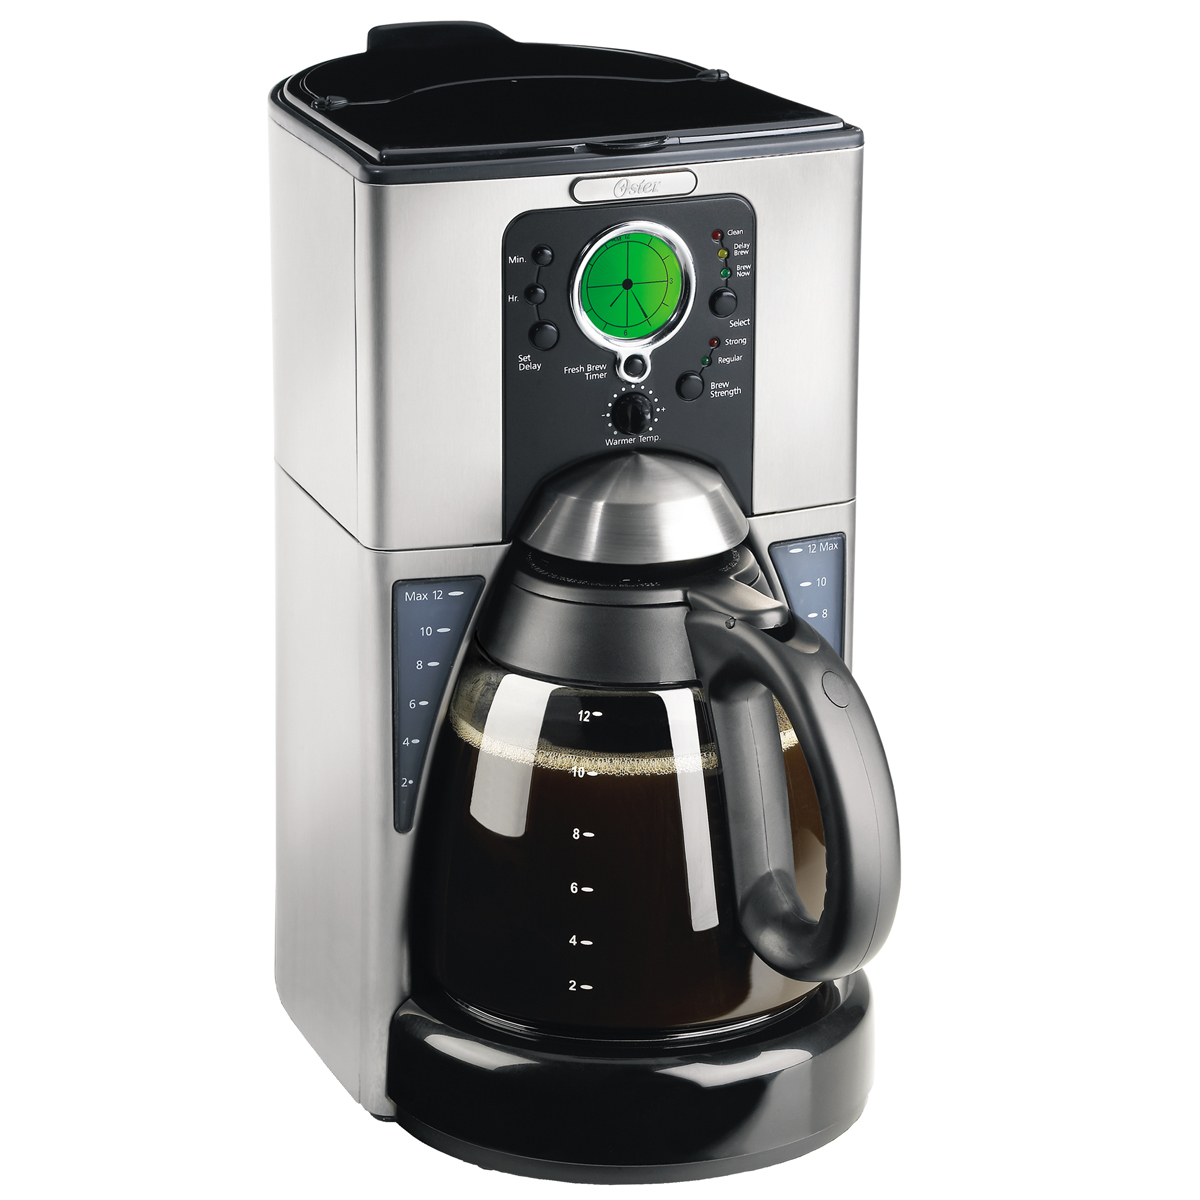 Fix Oster Coffee Maker : Oster 12-cup Programmable Coffee Maker 7988-33 Parts Oster Canada